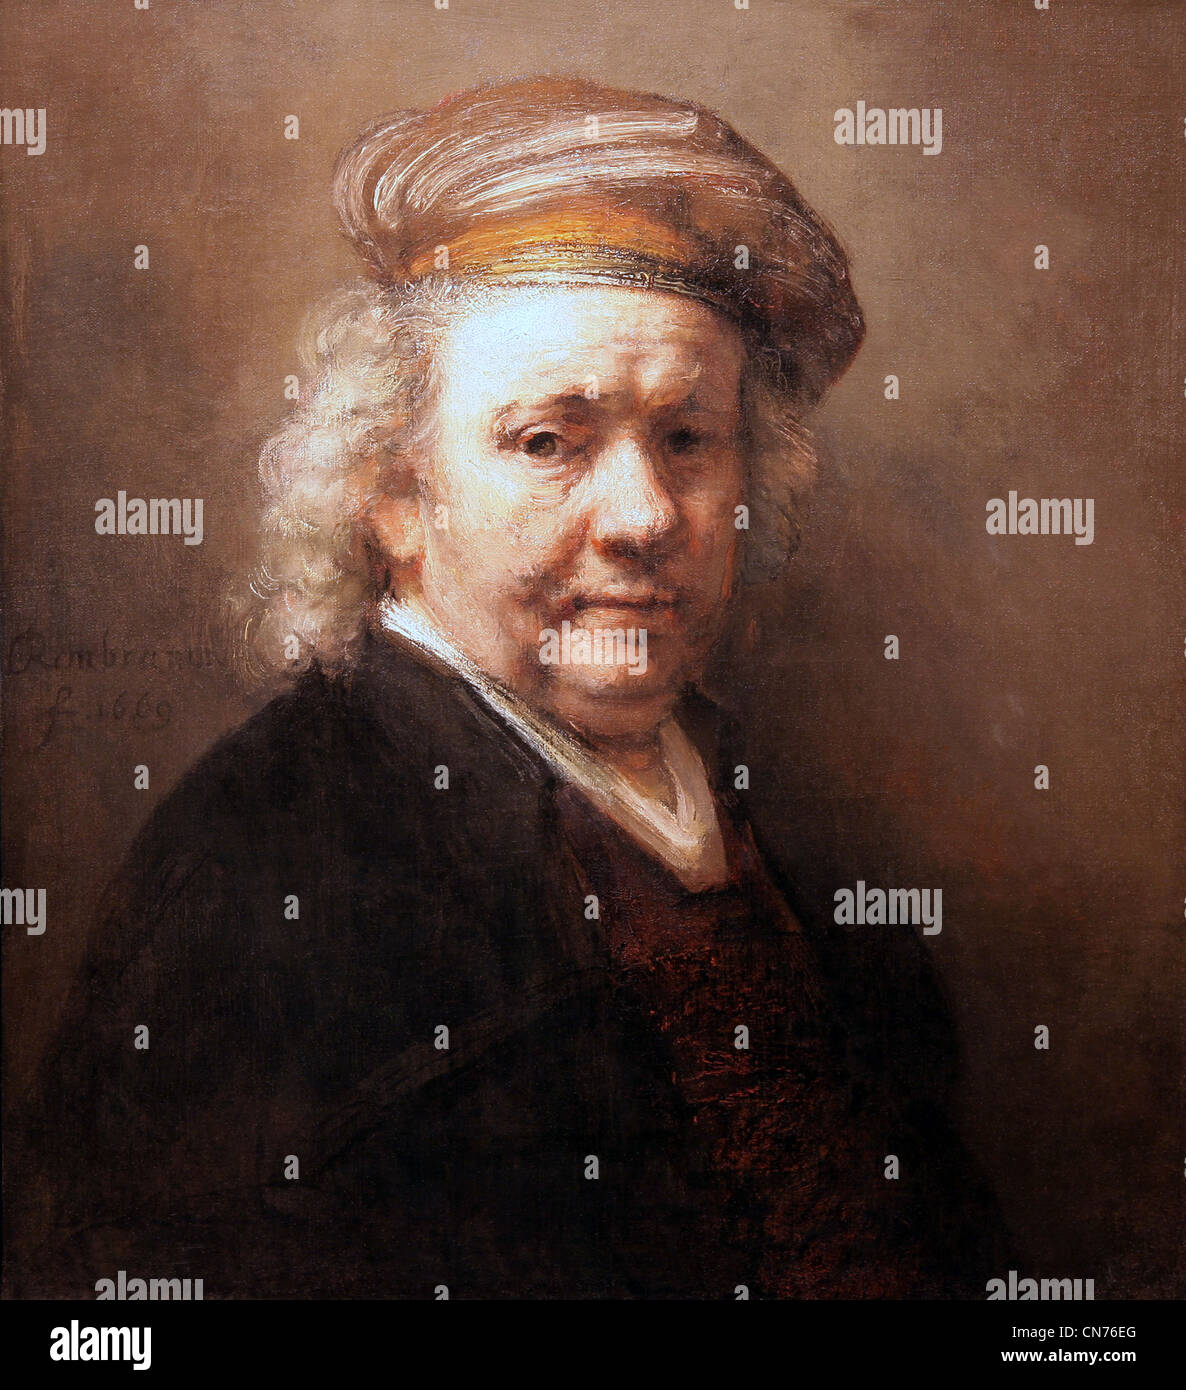 Rembrandt van Rijn,self portrait,selfportrait ,made in 1669,the year he died. - Stock Image